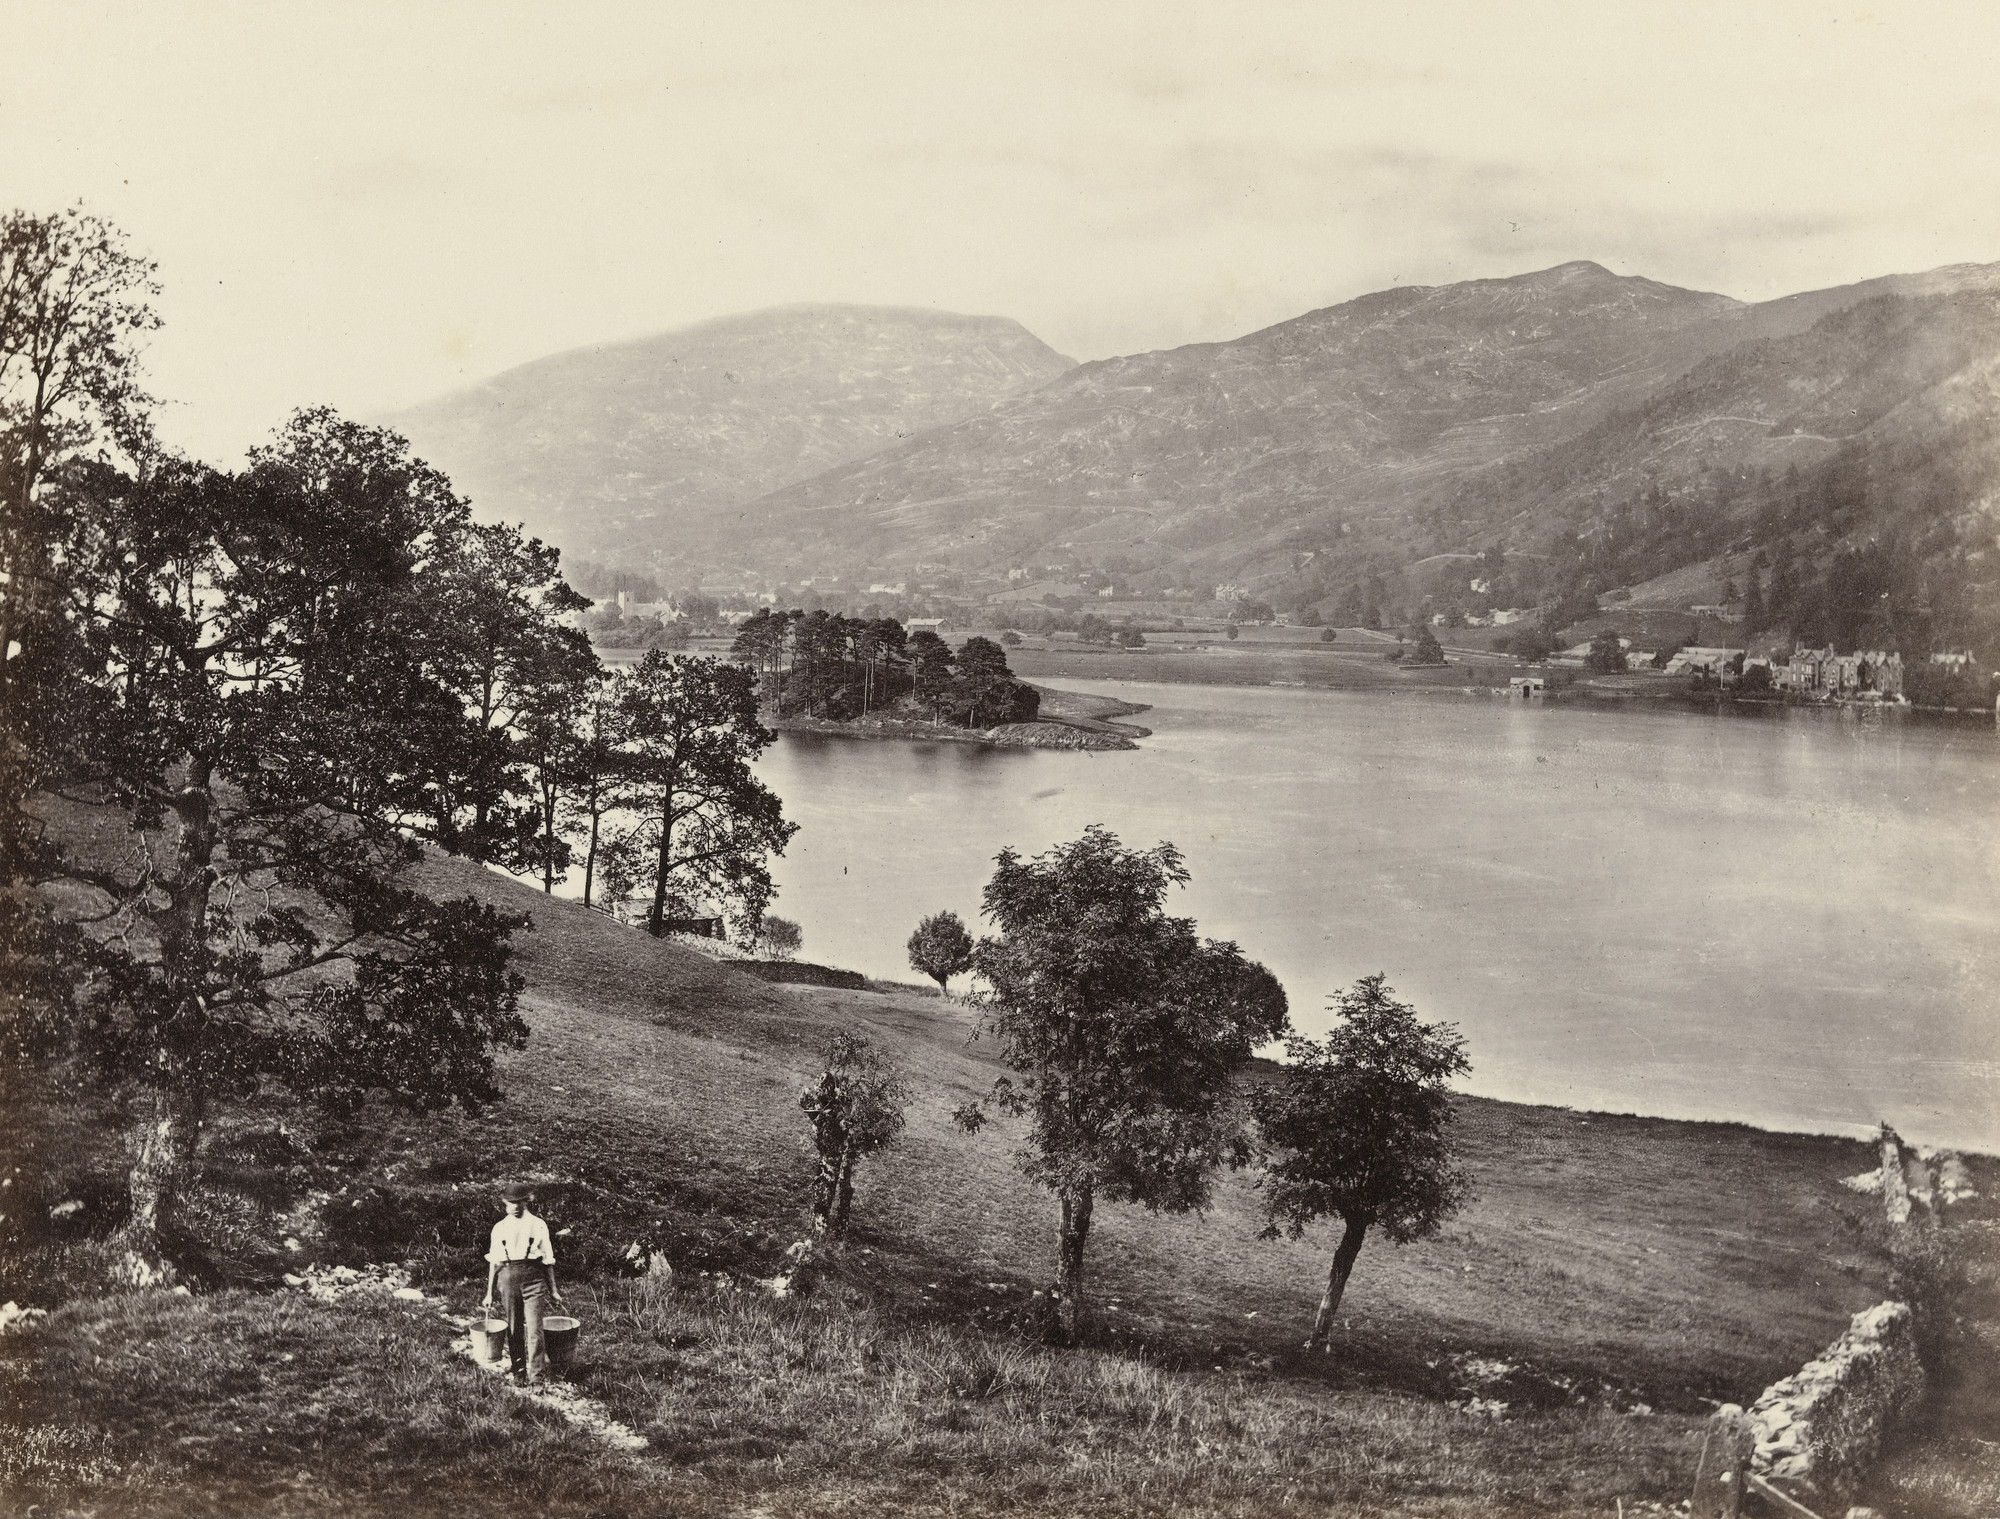 Francis Frith. Grasmere. c. 1860